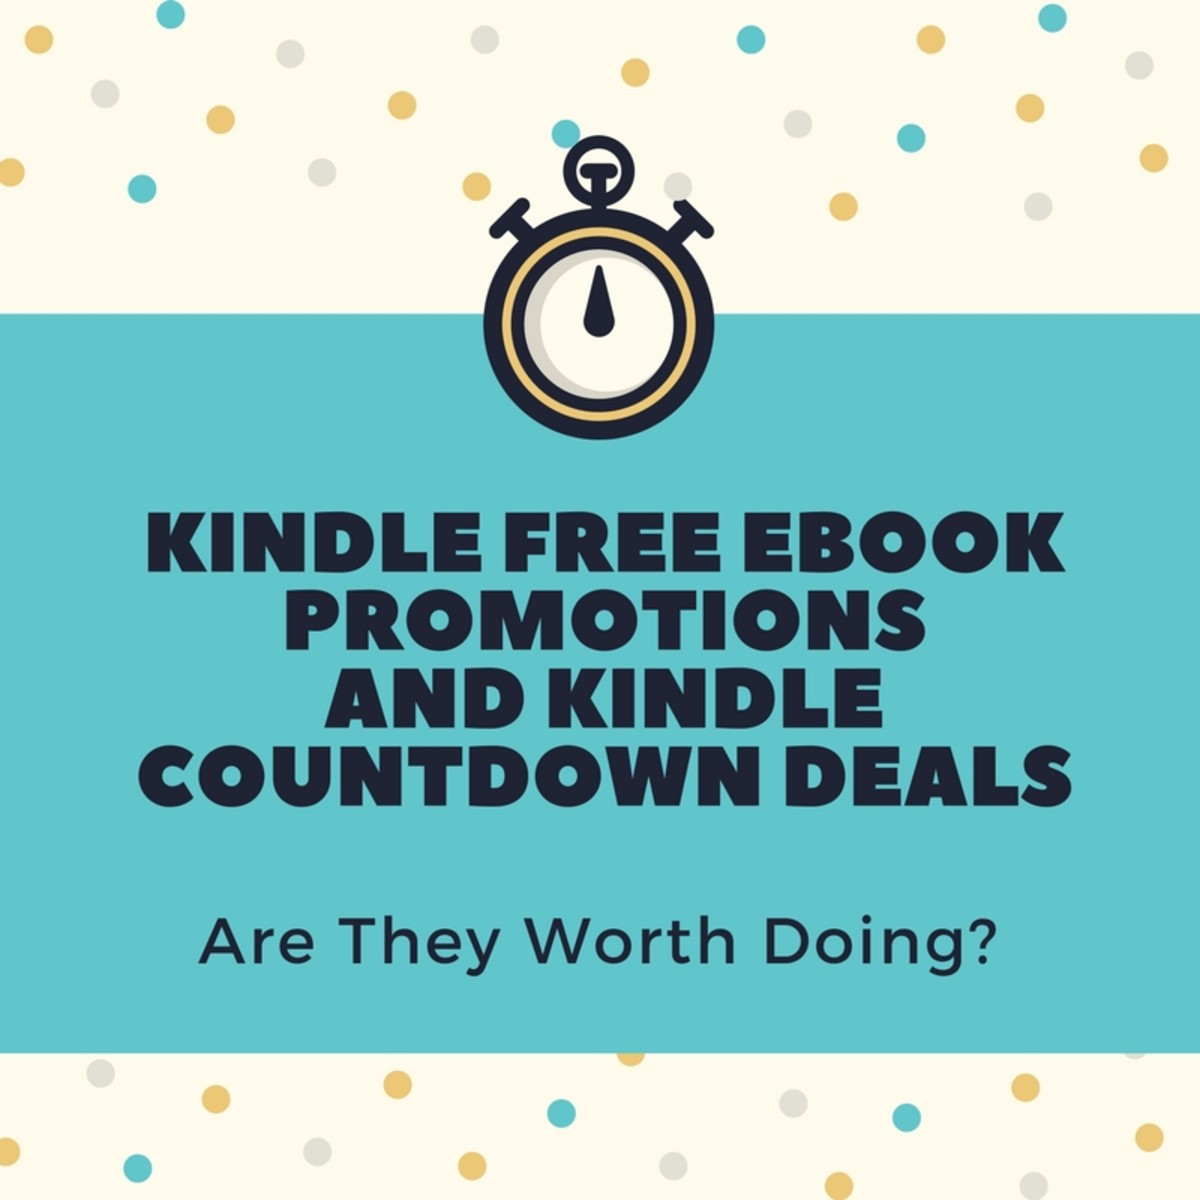 Kindle Free eBook Promotions and Countdown Deals: Are They ...